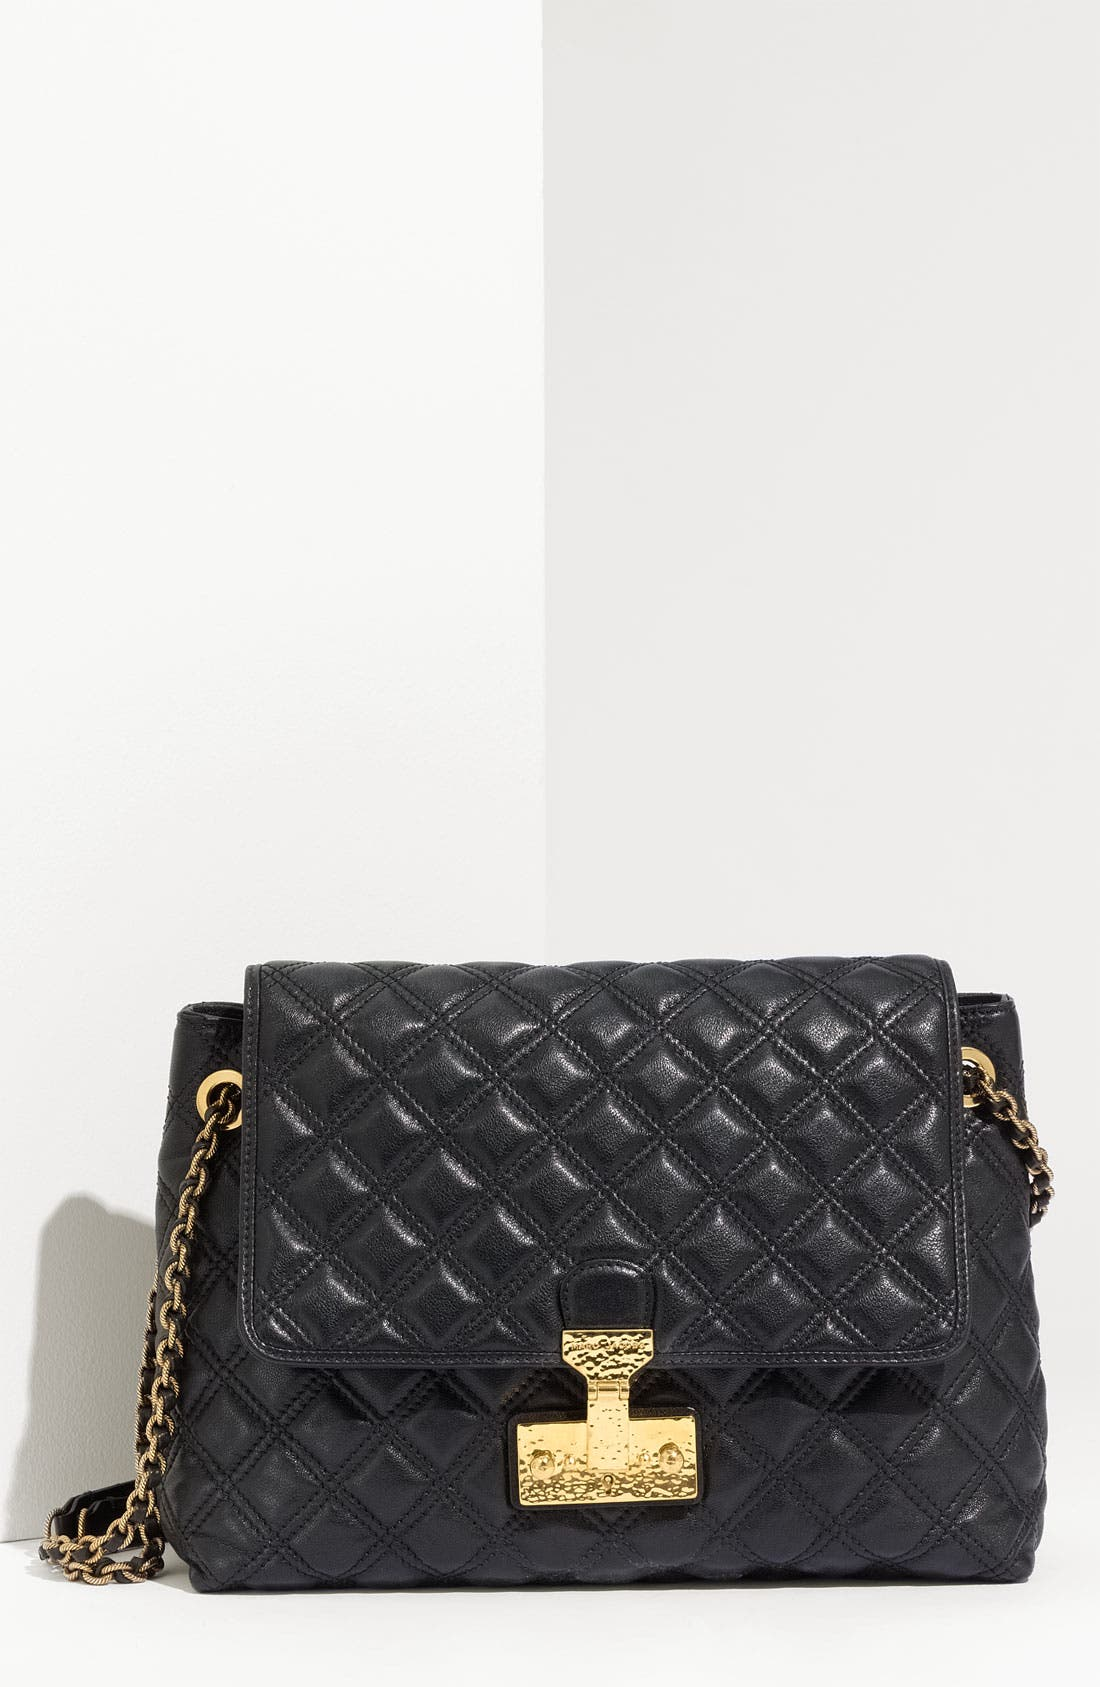 Alternate Image 1 Selected - MARC JACOBS 'Baroque - Extra Large' Leather Shoulder Bag